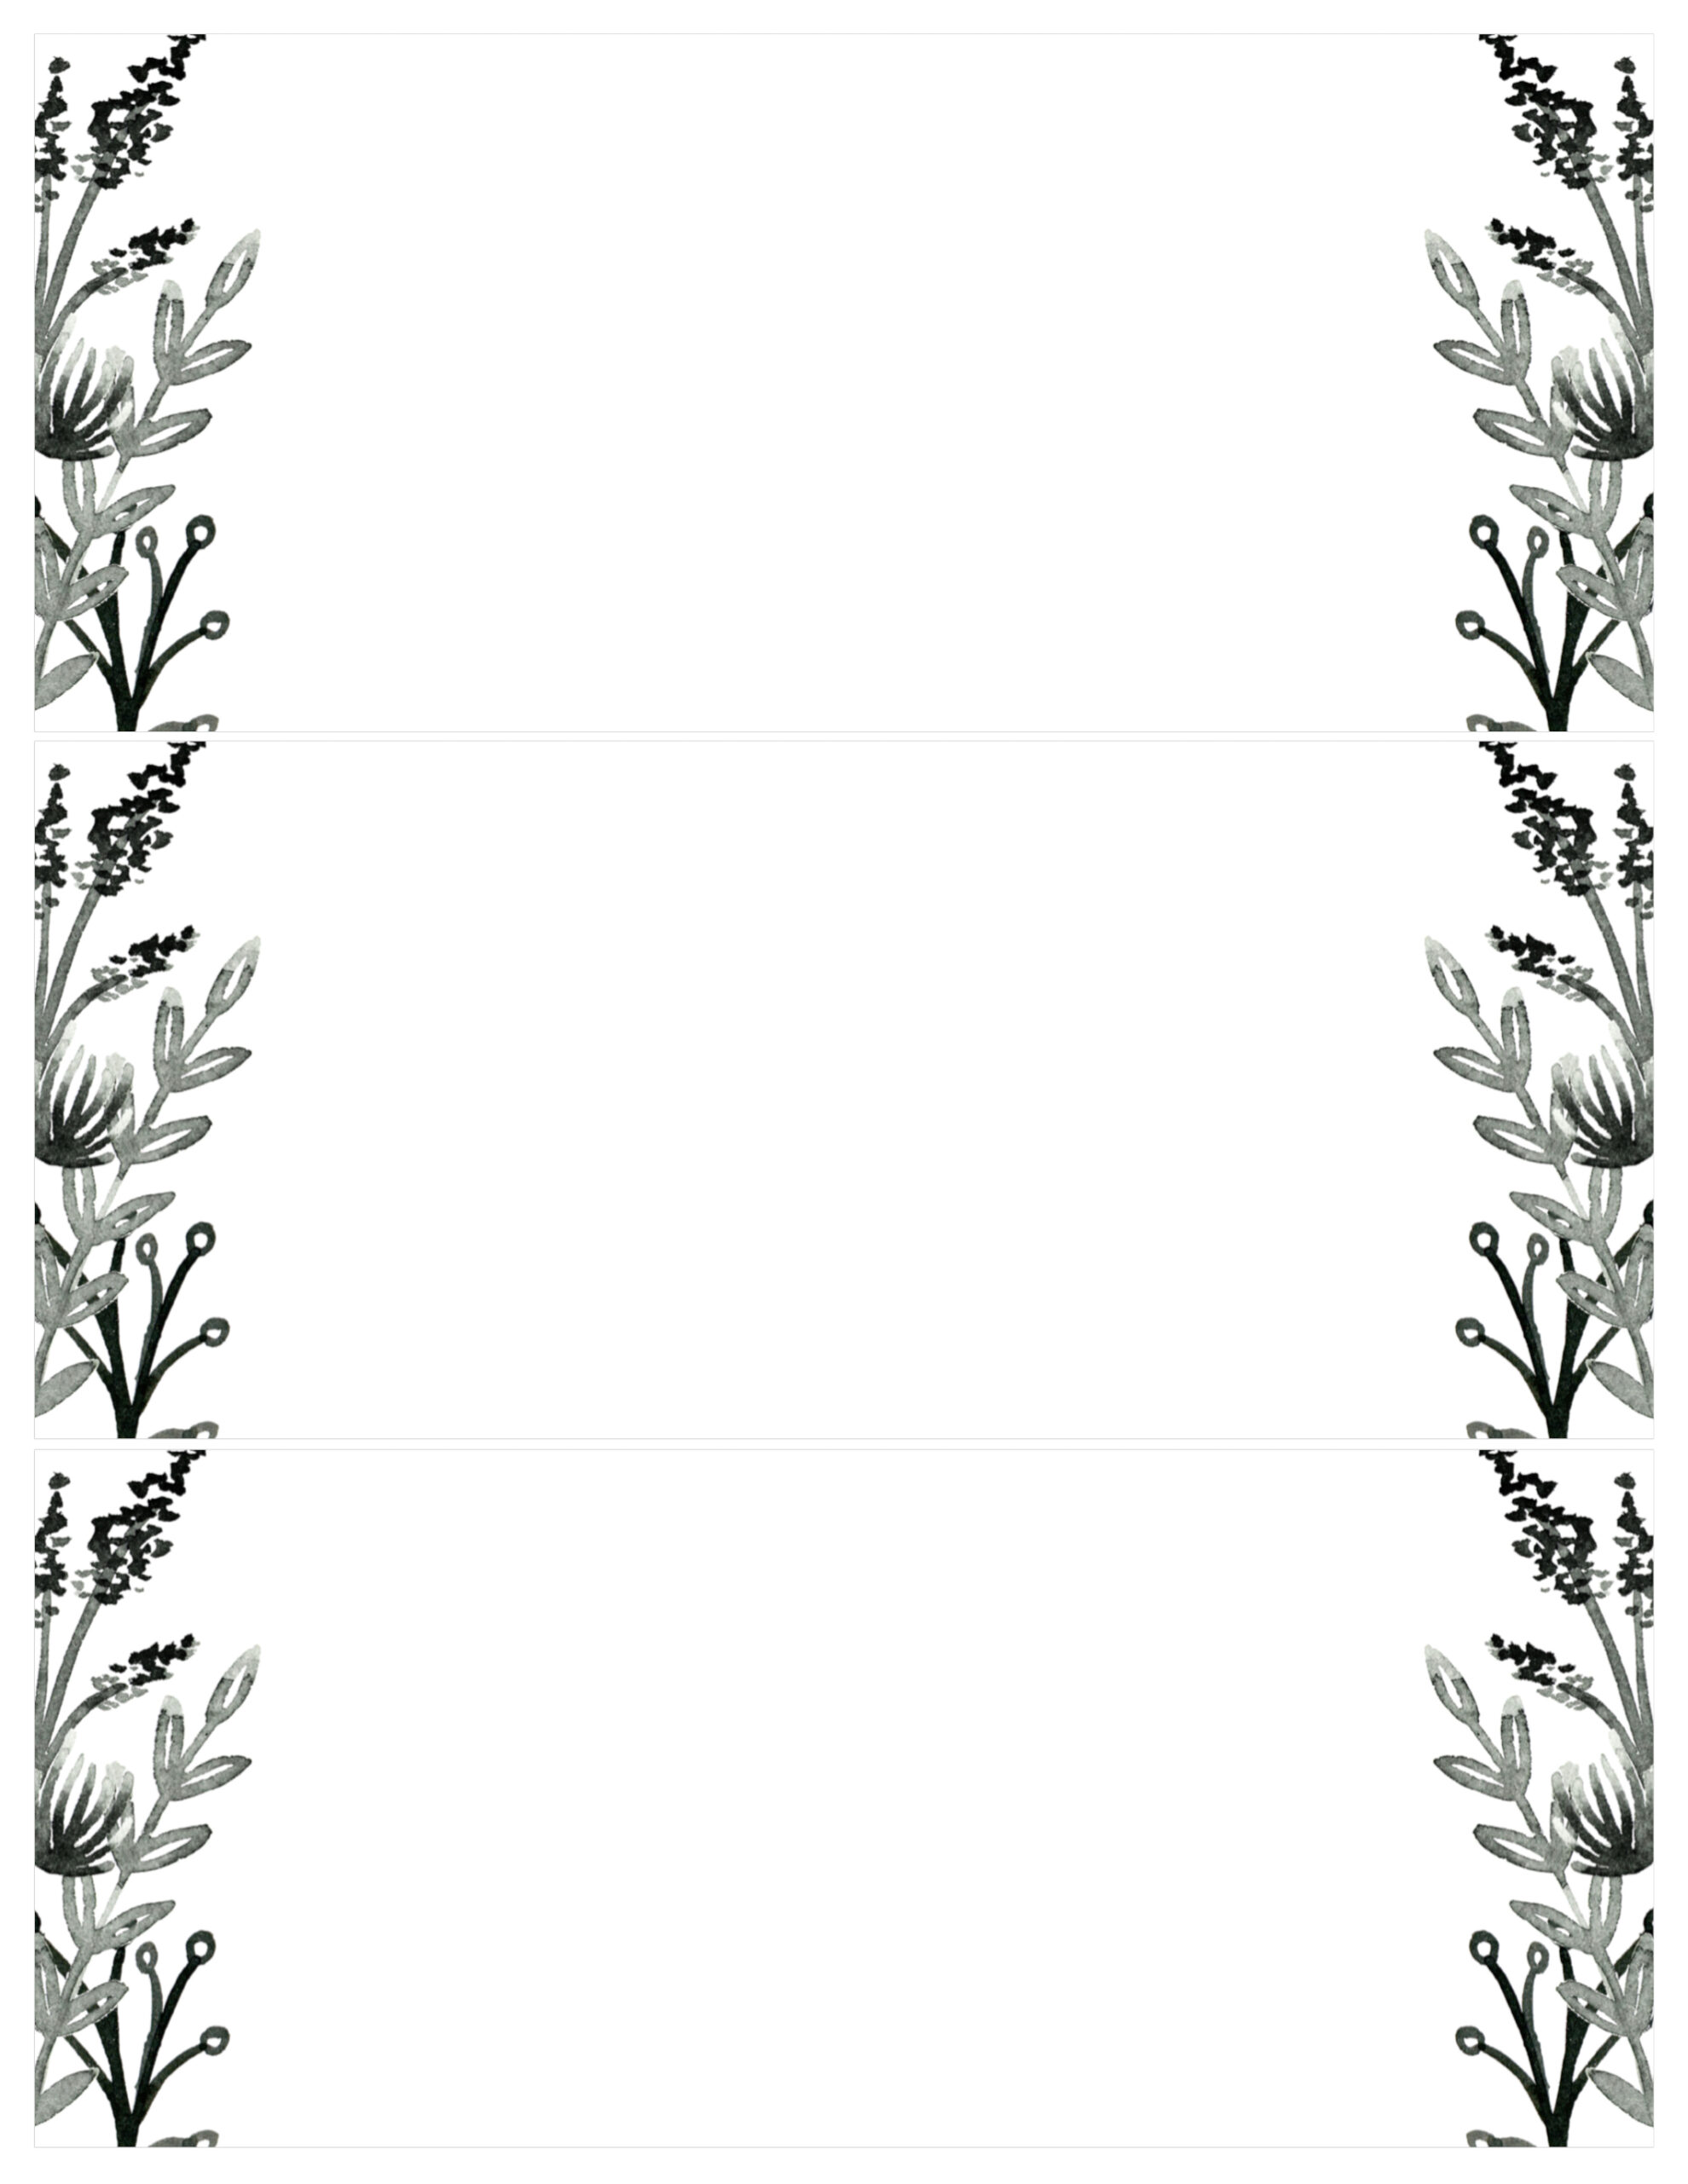 black and white blank invitation templates.